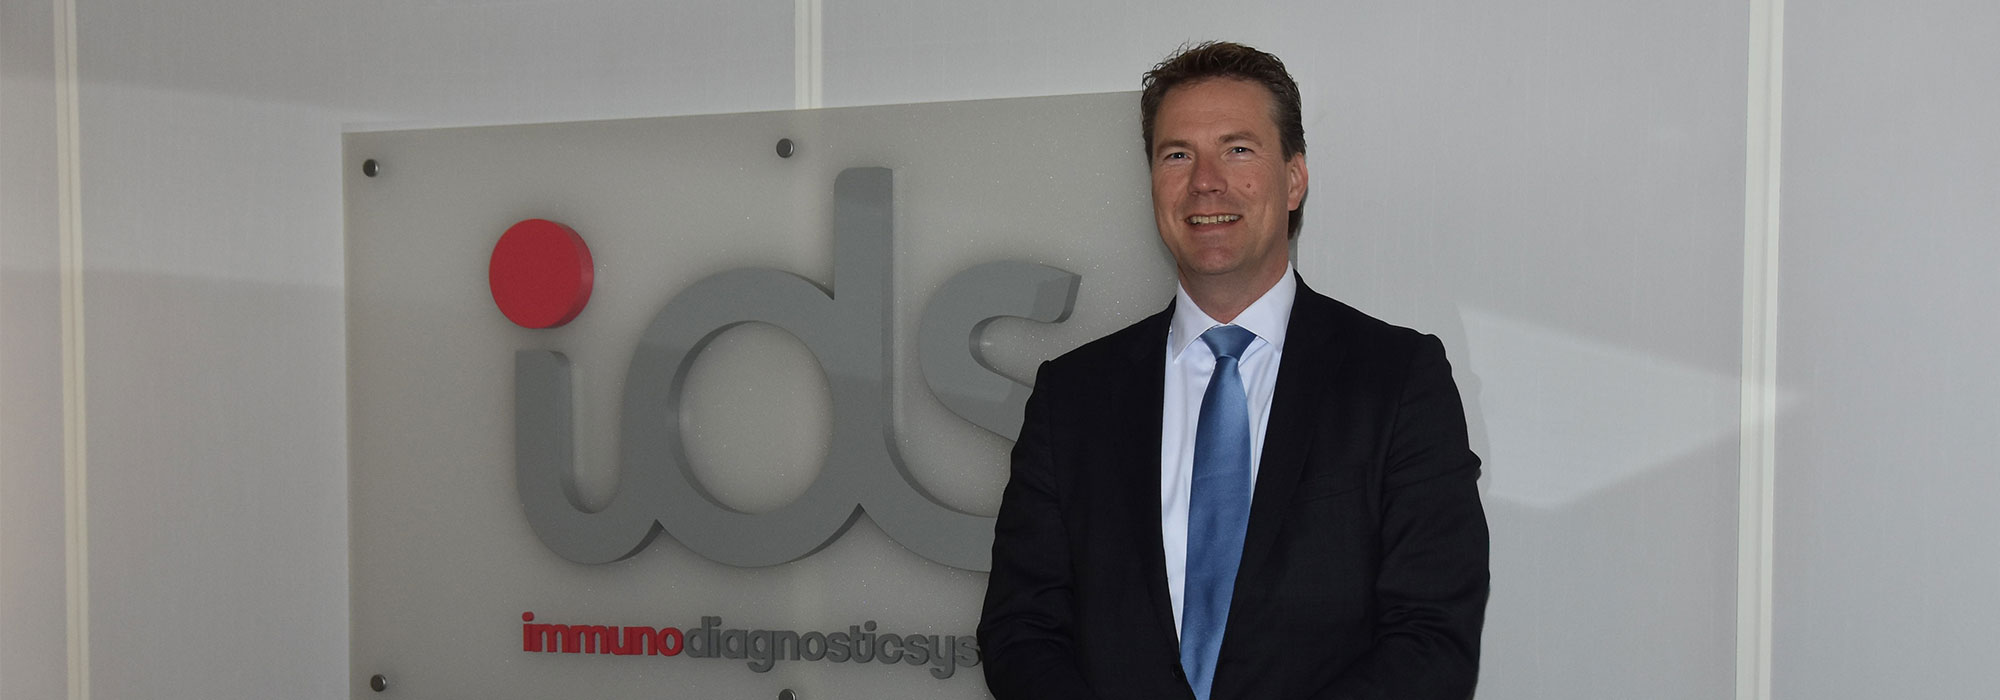 Jaap Stuut, the Group CEO of Immunodiagnostic Systems (IDS)